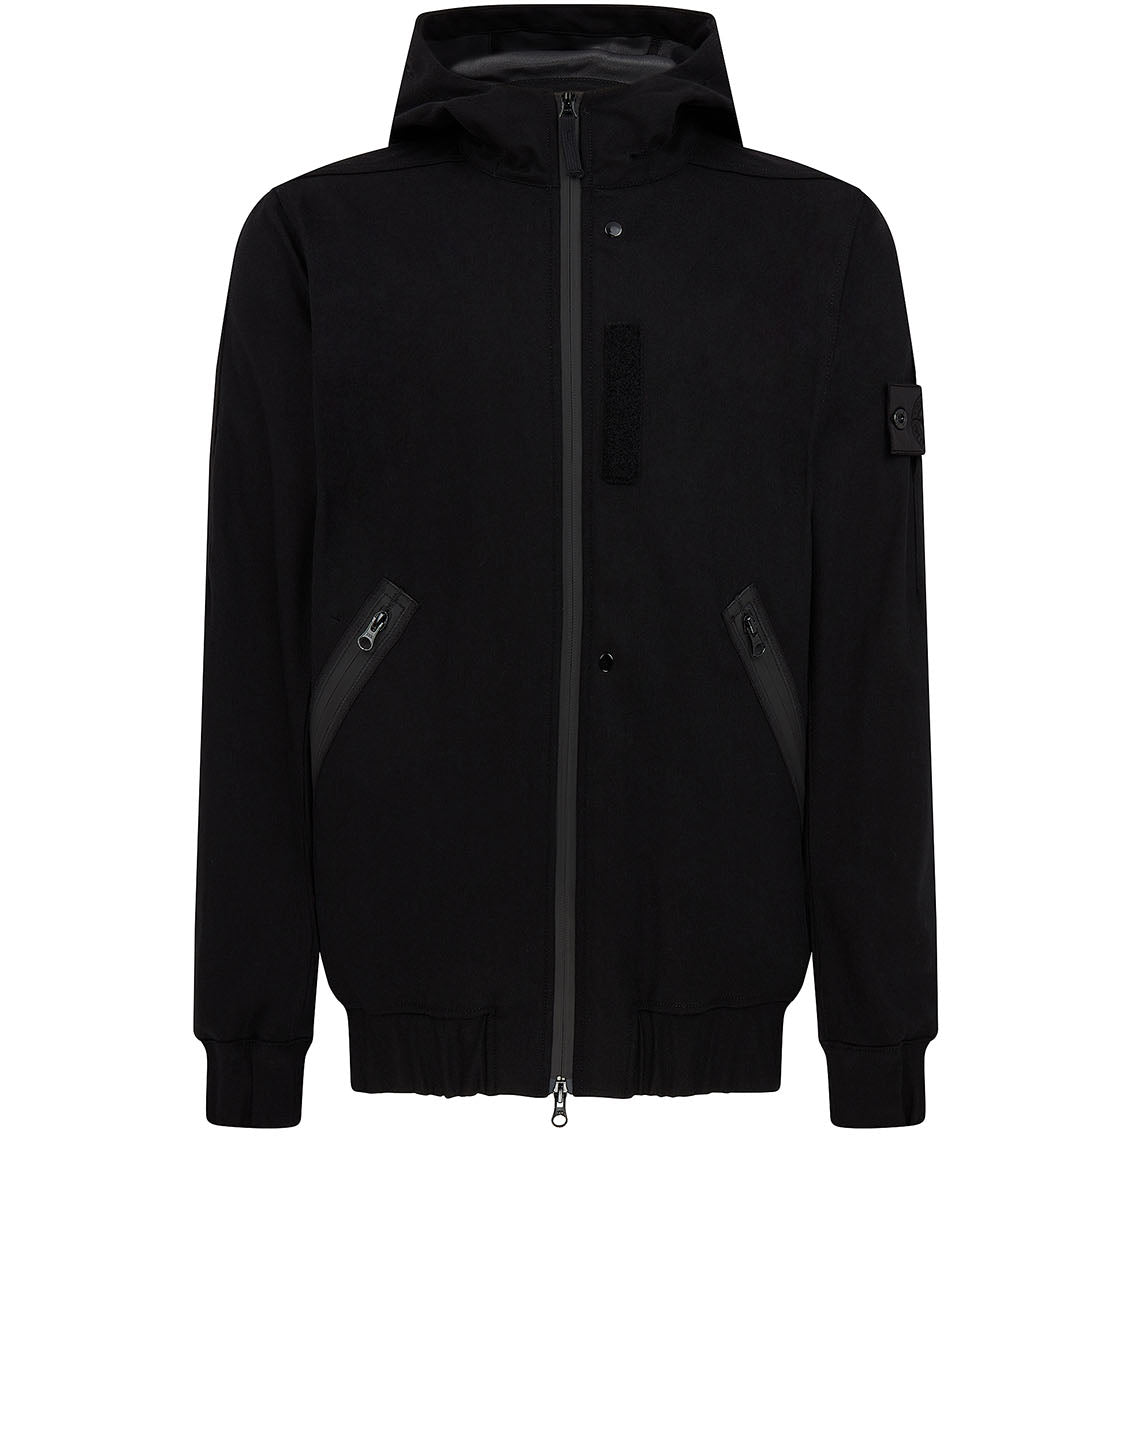 Q0201 HOODED JACKET in Black